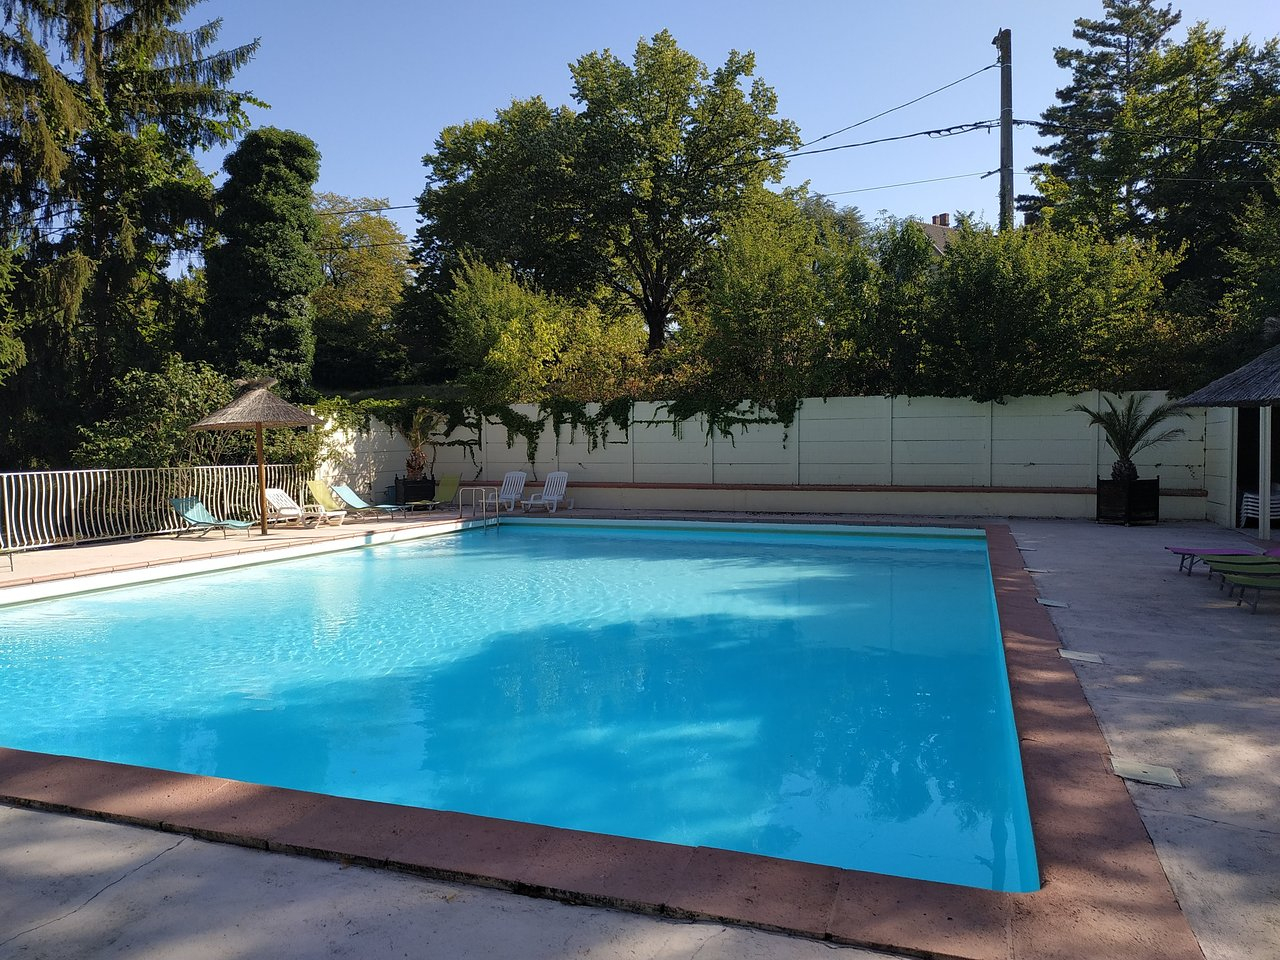 Camping Les Claires - Campground Reviews (Saint-Rambert-D ... encequiconcerne Camping Auvergne Piscine